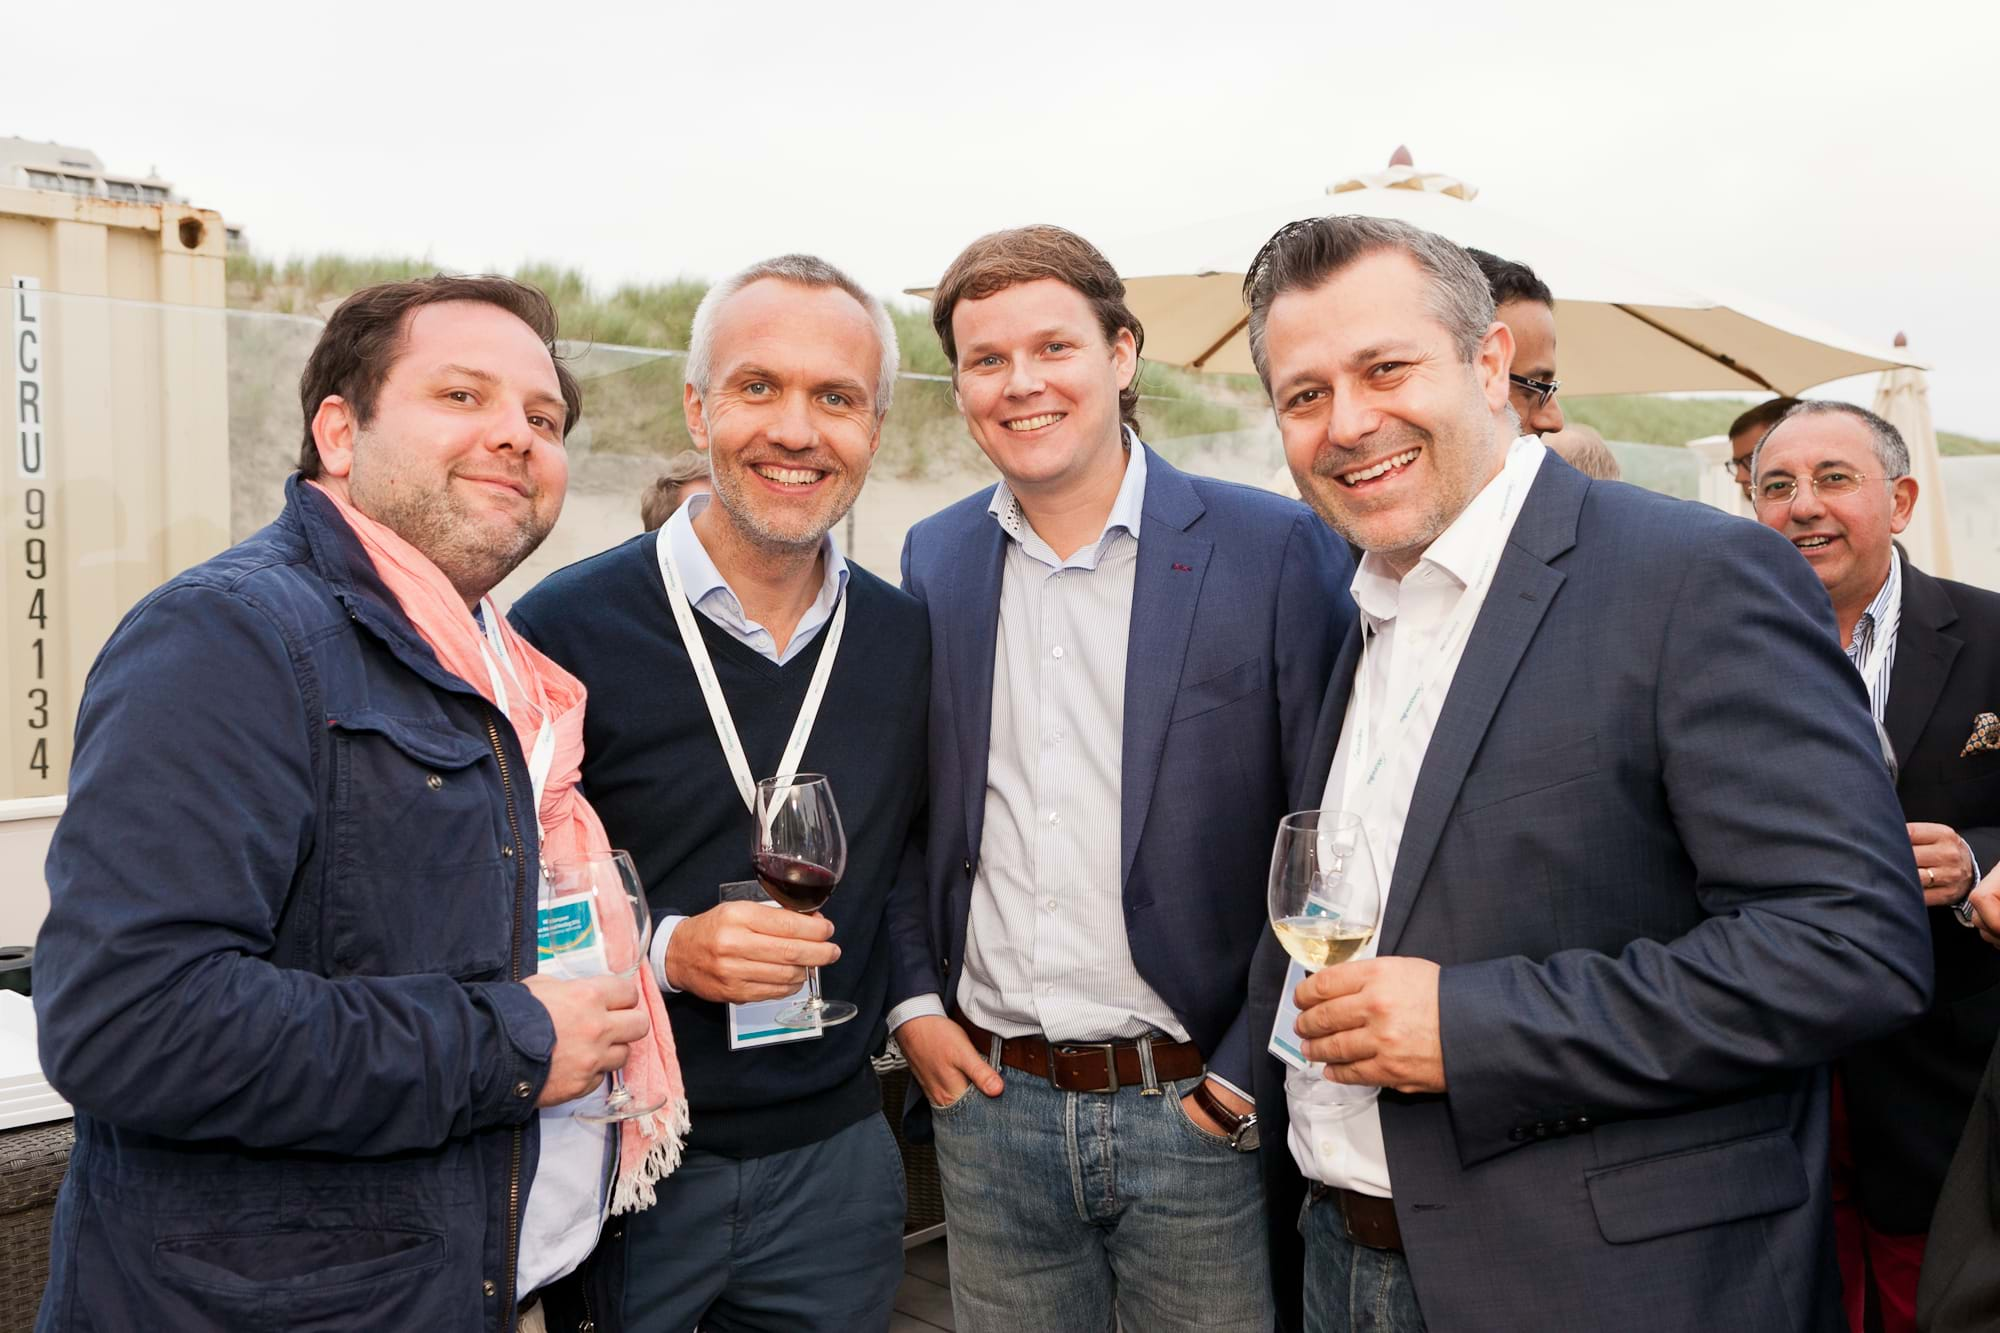 MGI World Delegates at beachside welcome drinks 6 MGI European Area Meeting, the Netherlands 2016